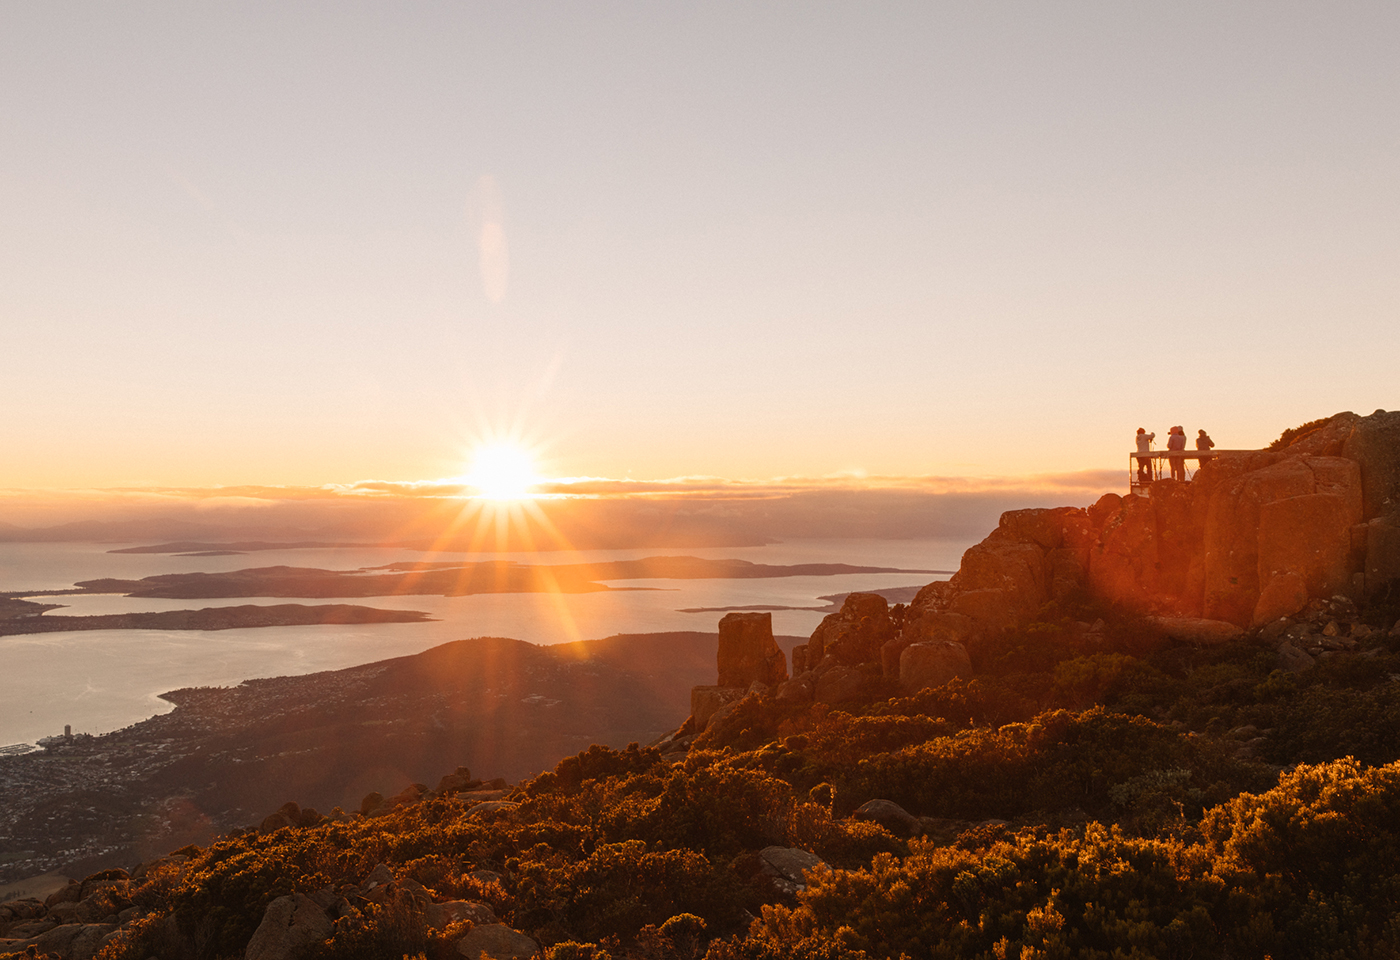 Sunrise photography at Mt Wellington by Neal Walters